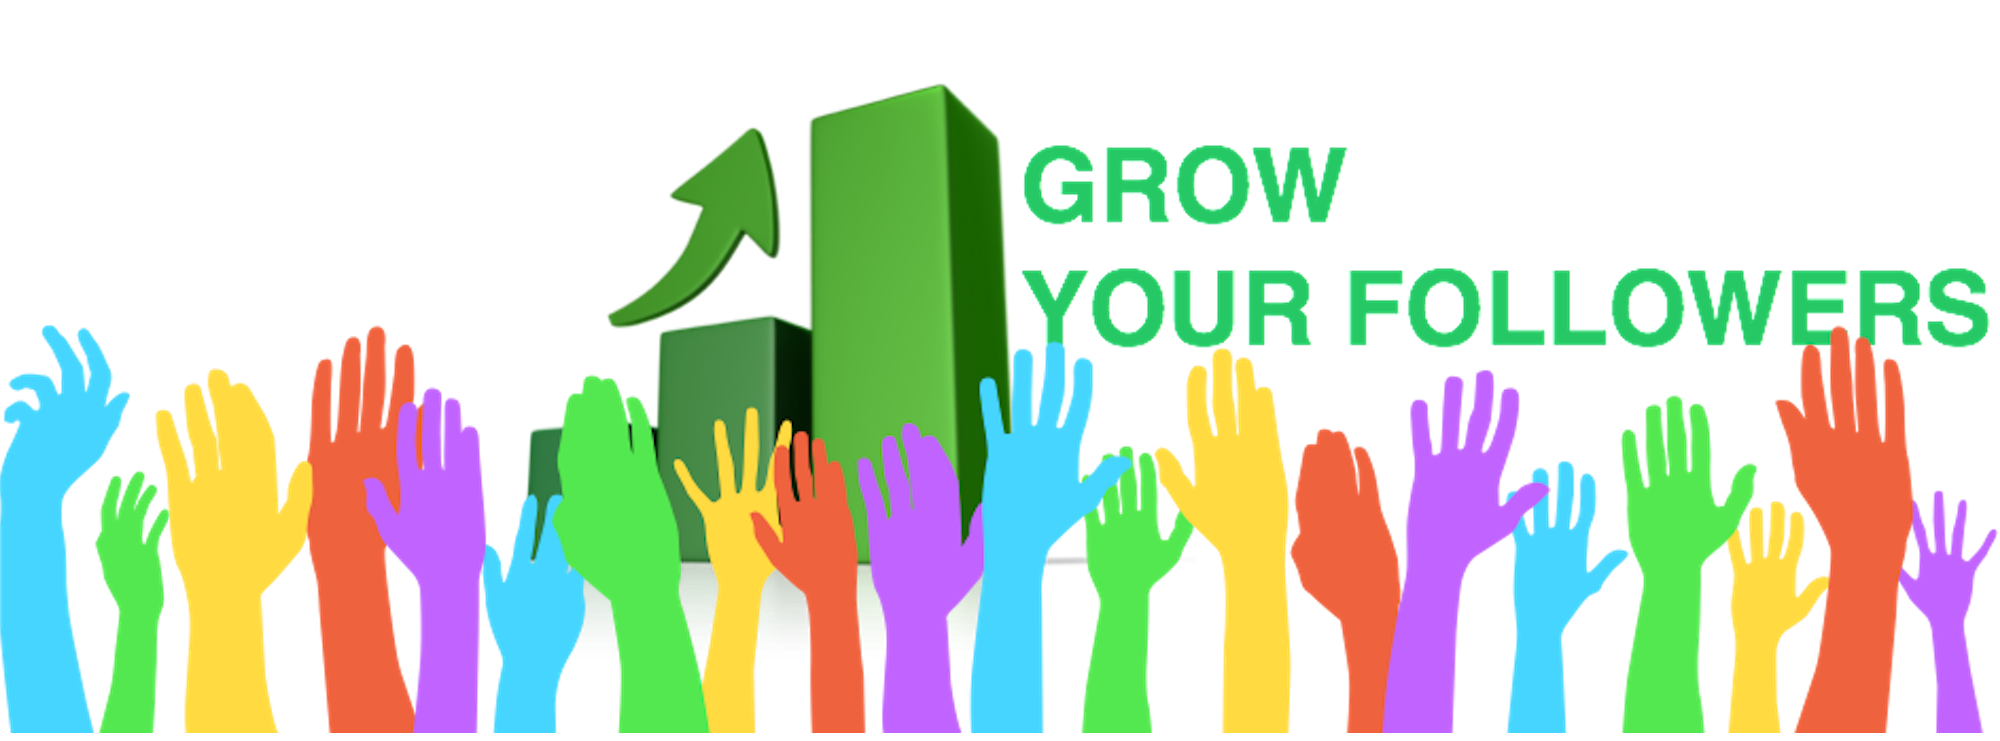 Grow your Followers